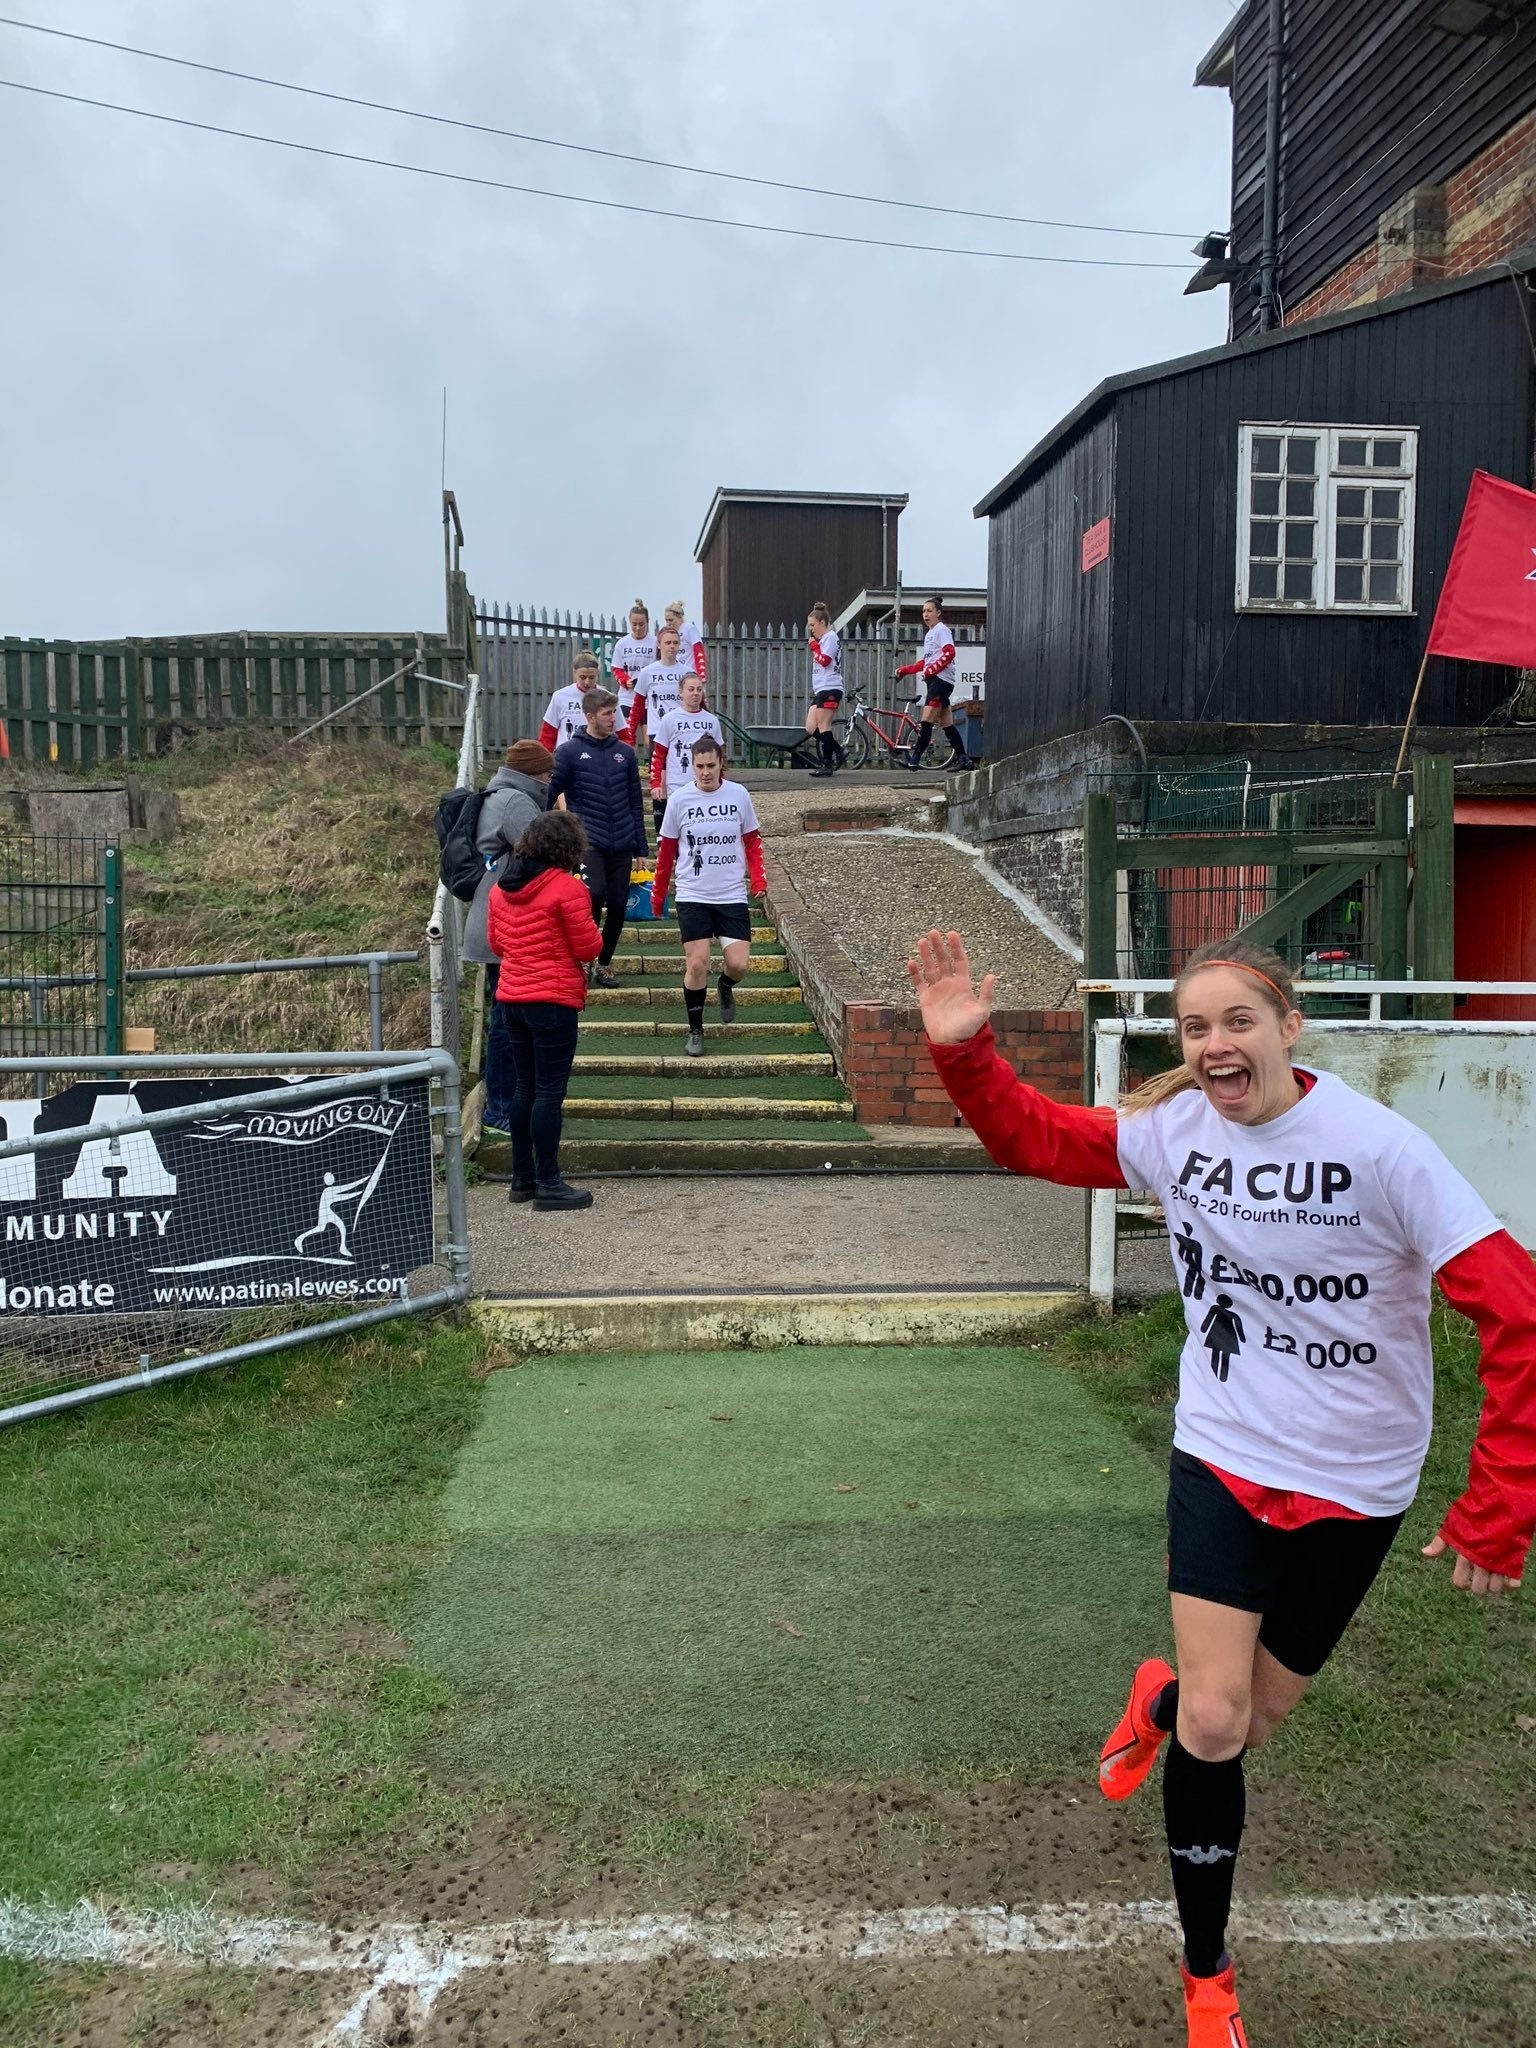 Lewes Women FC continue their fight against FA Cup pay gap with customised T-shirts at fourth-round tie against Billericay Town